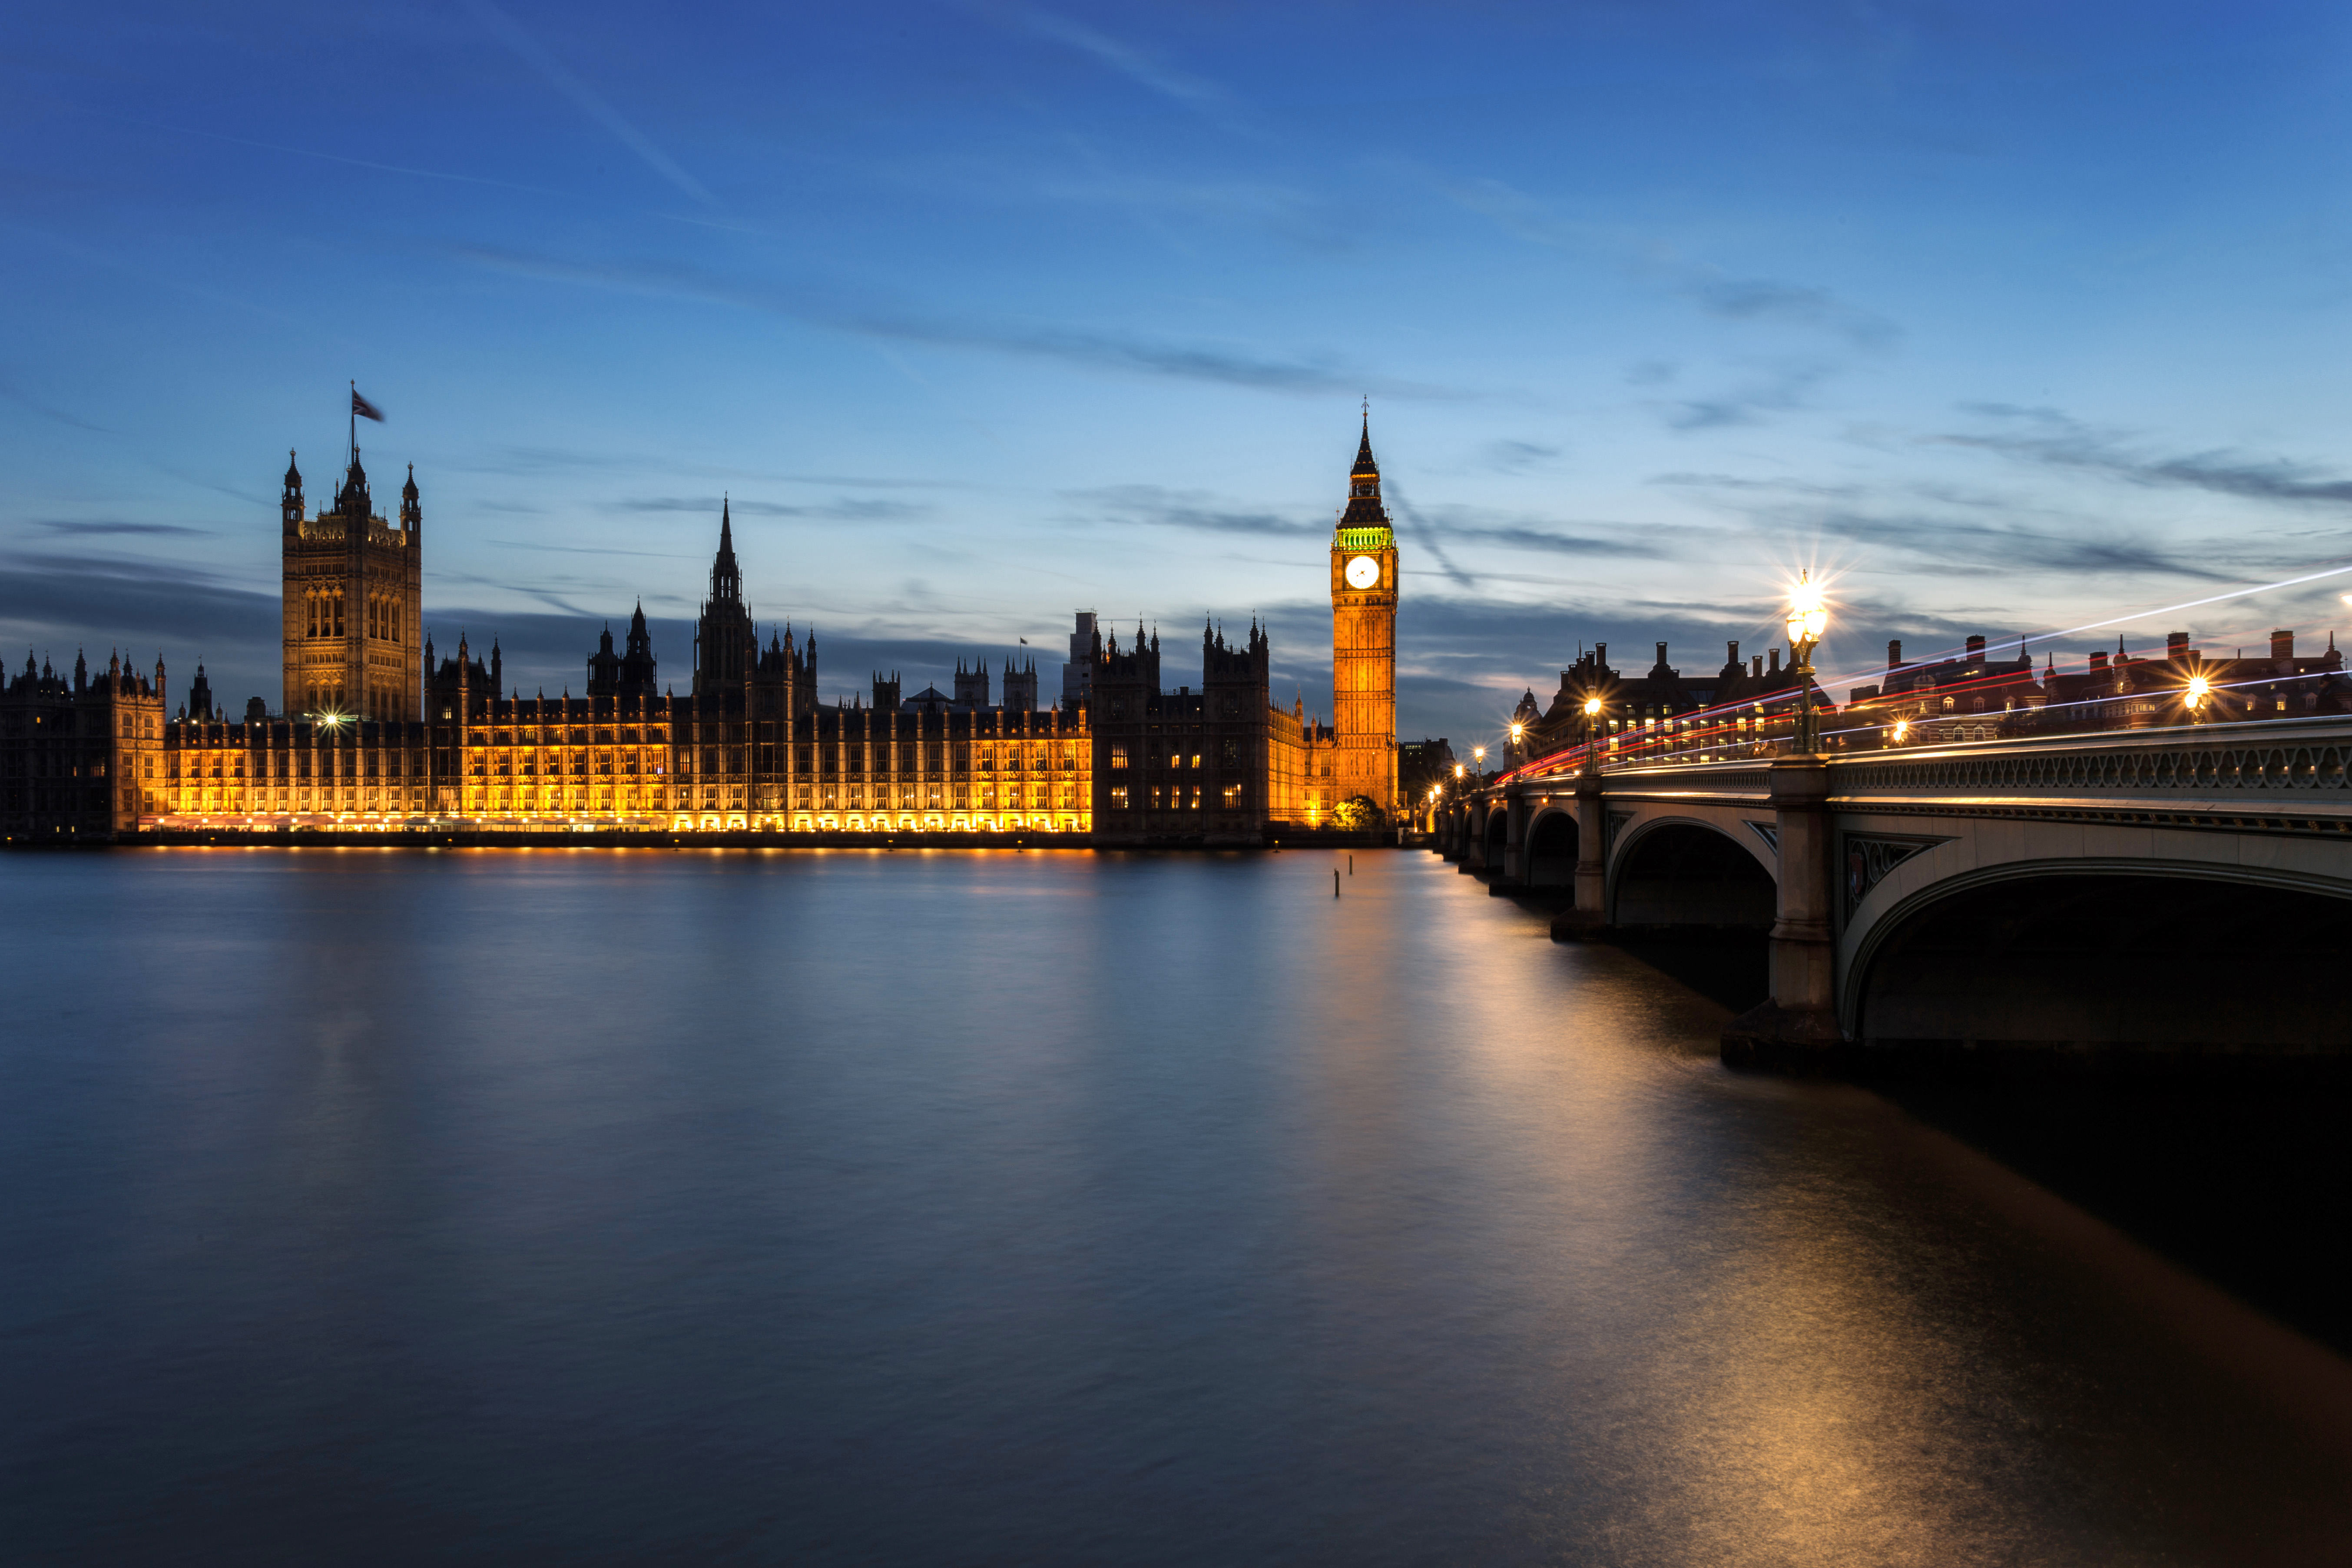 http://upload.wikimedia.org/wikipedia/commons/3/3a/Palace_of_Westminster_and_Westminster_bridge_at_night.jpg